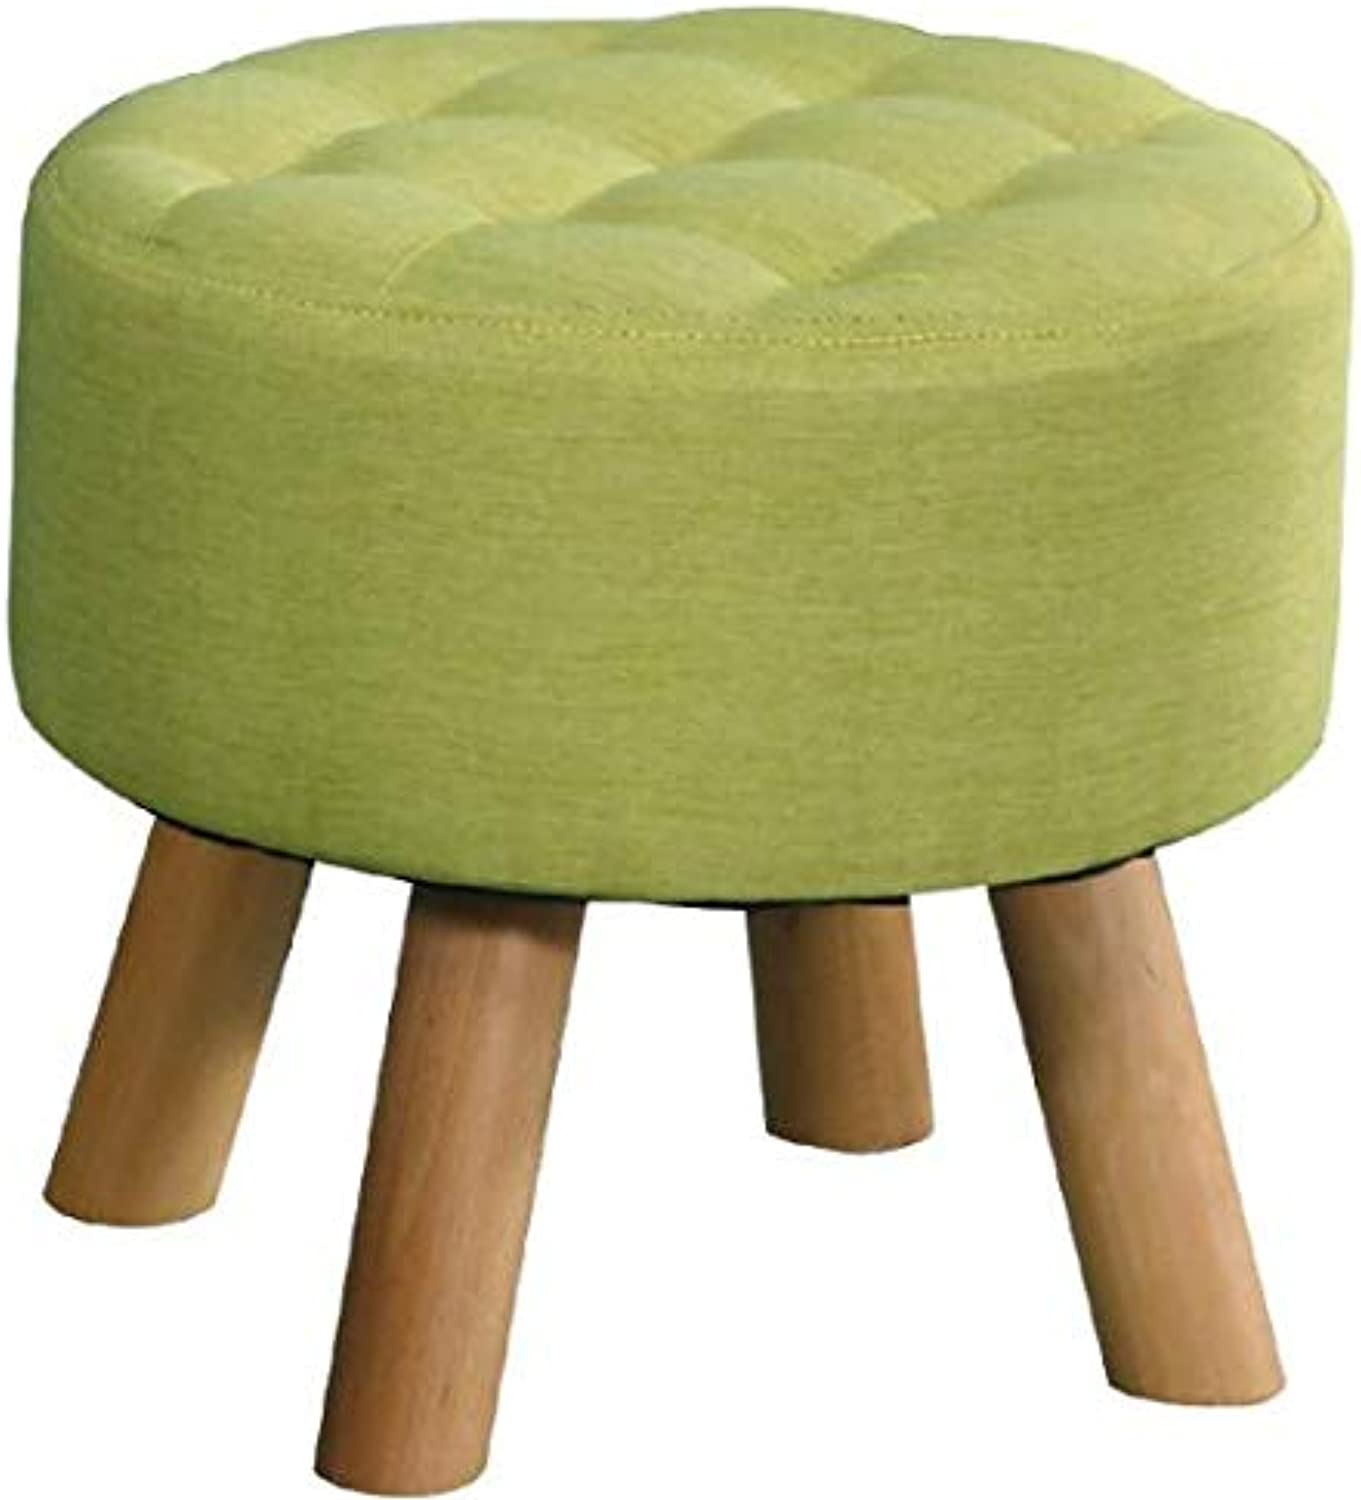 Round Wooden Bench with Cushioned, 4 Foot Support-Green